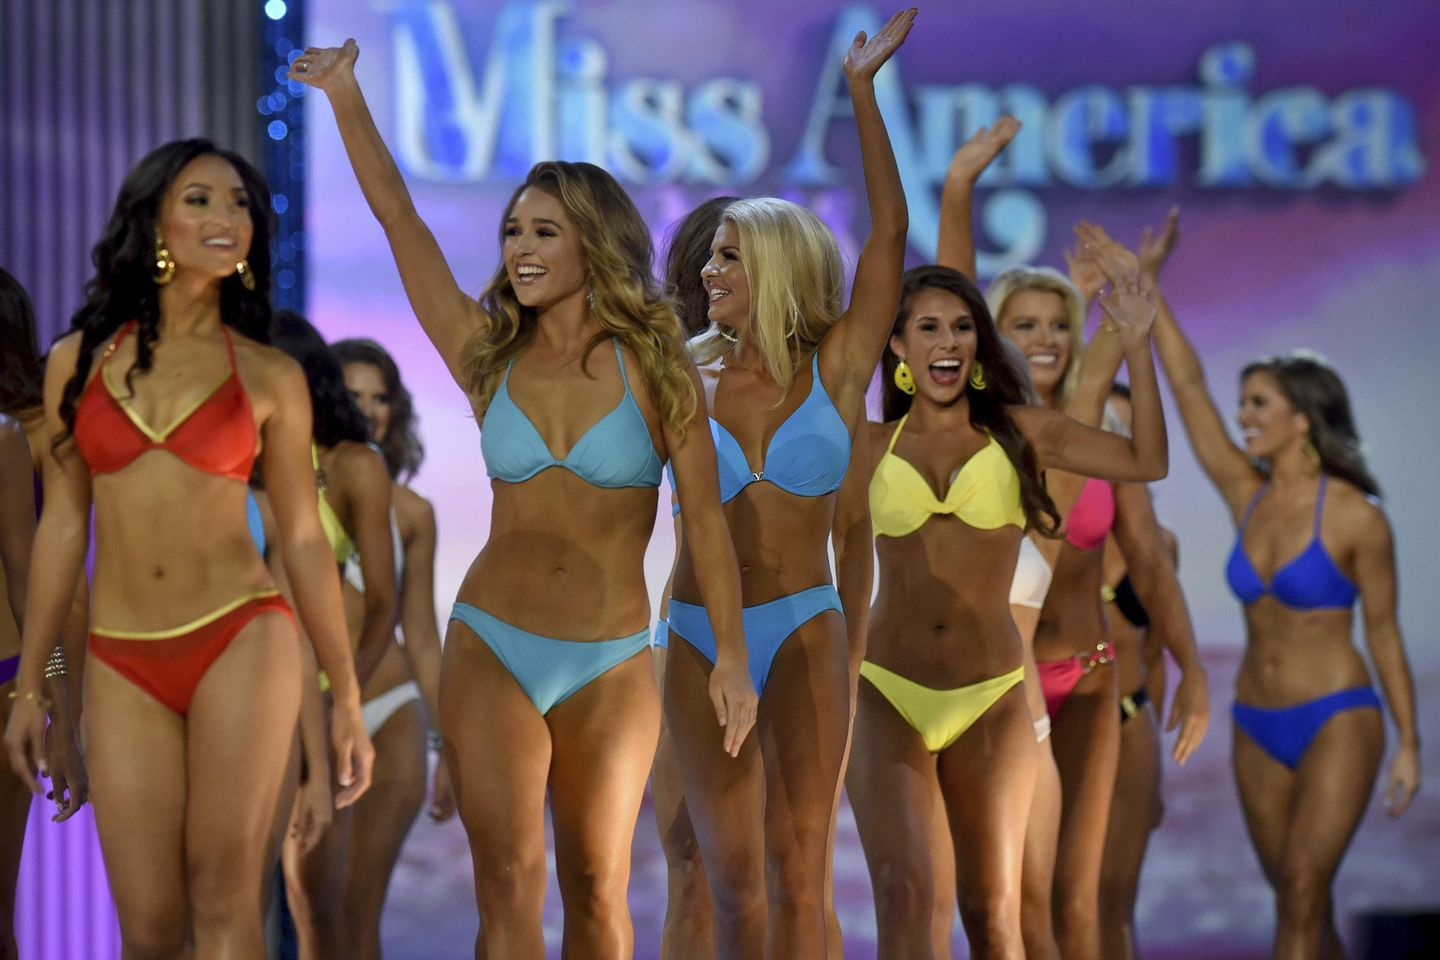 No bikinis, please, we're Christians, pastor said — then changed his mind